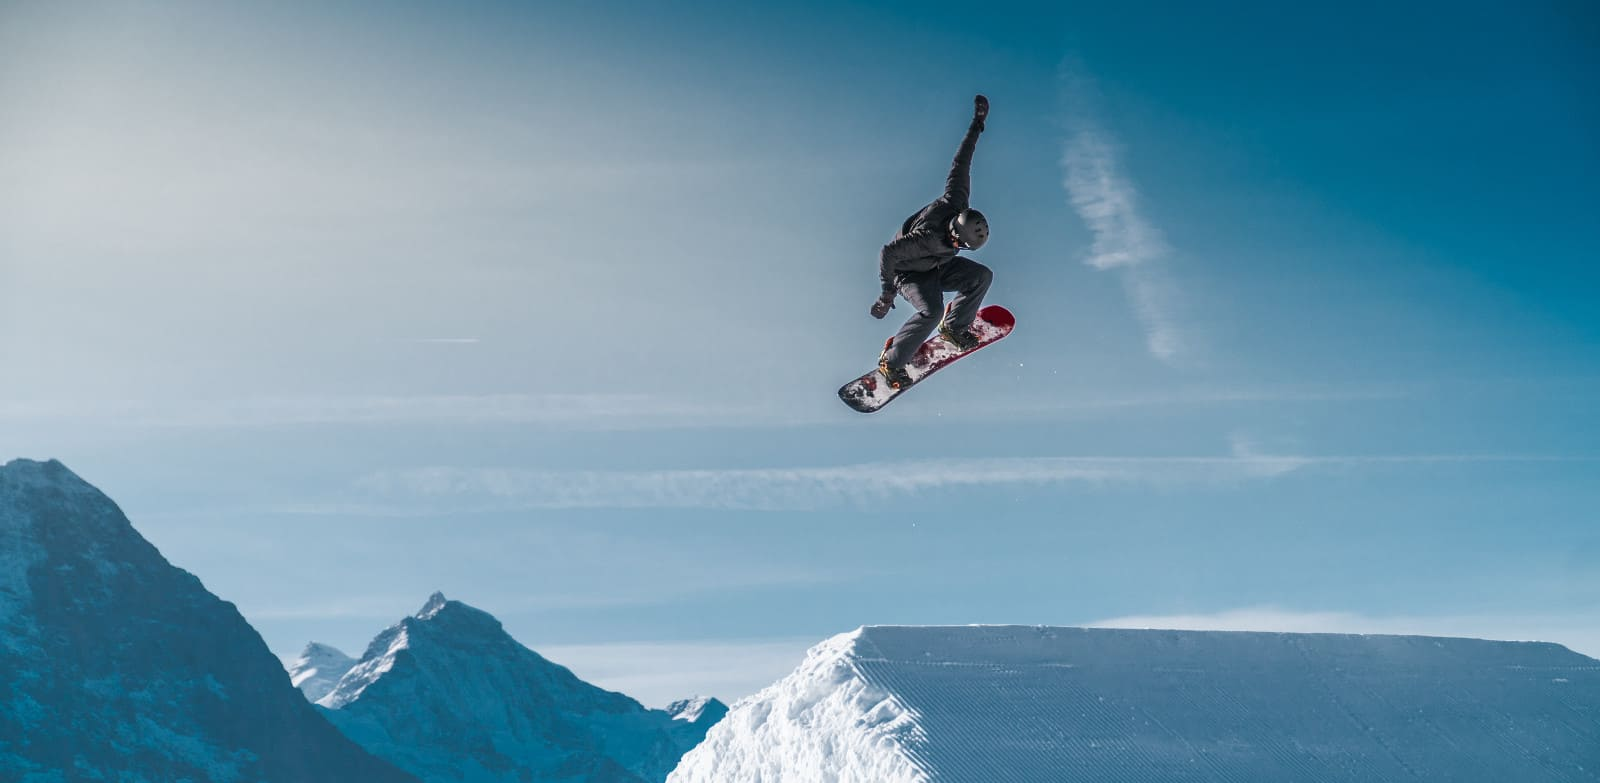 Snowboarding Injury & Liability Waivers: When Are They Legally Binding?